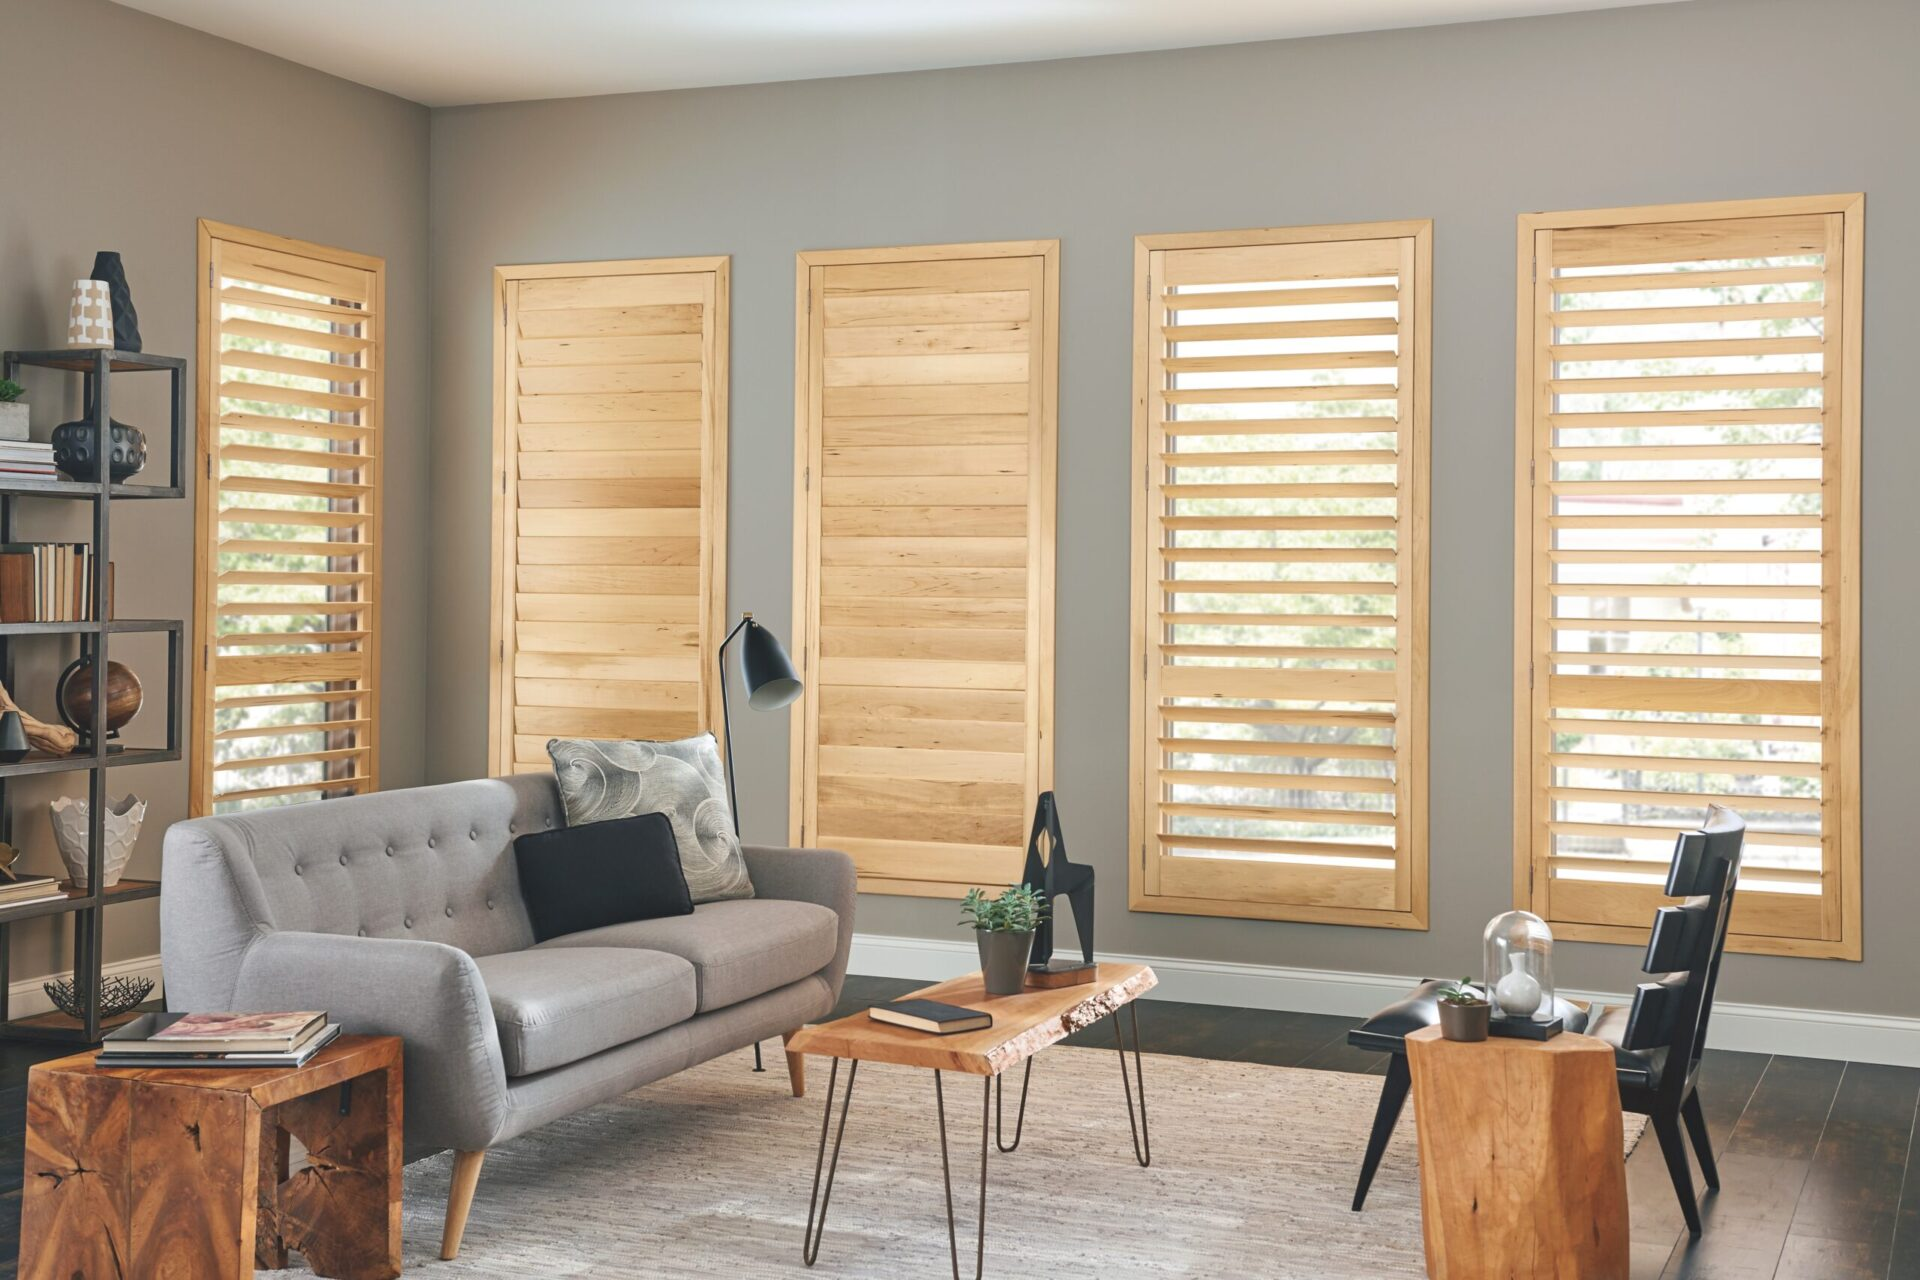 Window Shutters & Shades - Roman Shades, Roller Shades, Solar Shades, Cellular Shades, & more - Dynamic Delivery Blinds | Nashville, TN